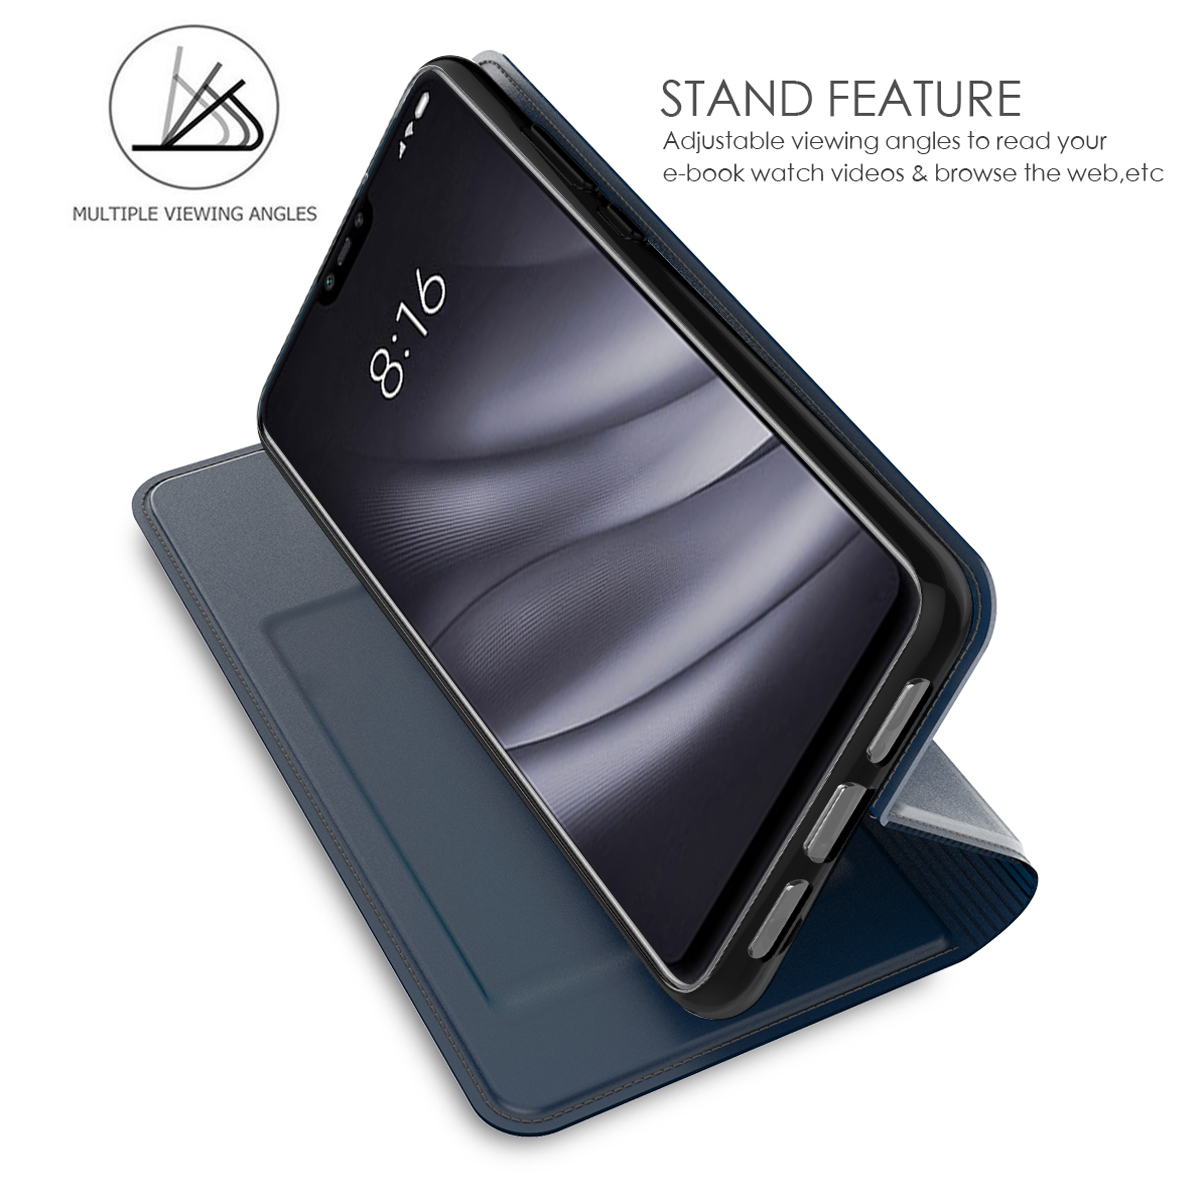 Image 2 - For Asus Zenfone Max M2 ZB633KL Case PU Leather Flip Stand Wallet Cover For Asus Zenfone Max Pro M2 ZB631KL ZB602KL Case Card-in Wallet Cases from Cellphones & Telecommunications